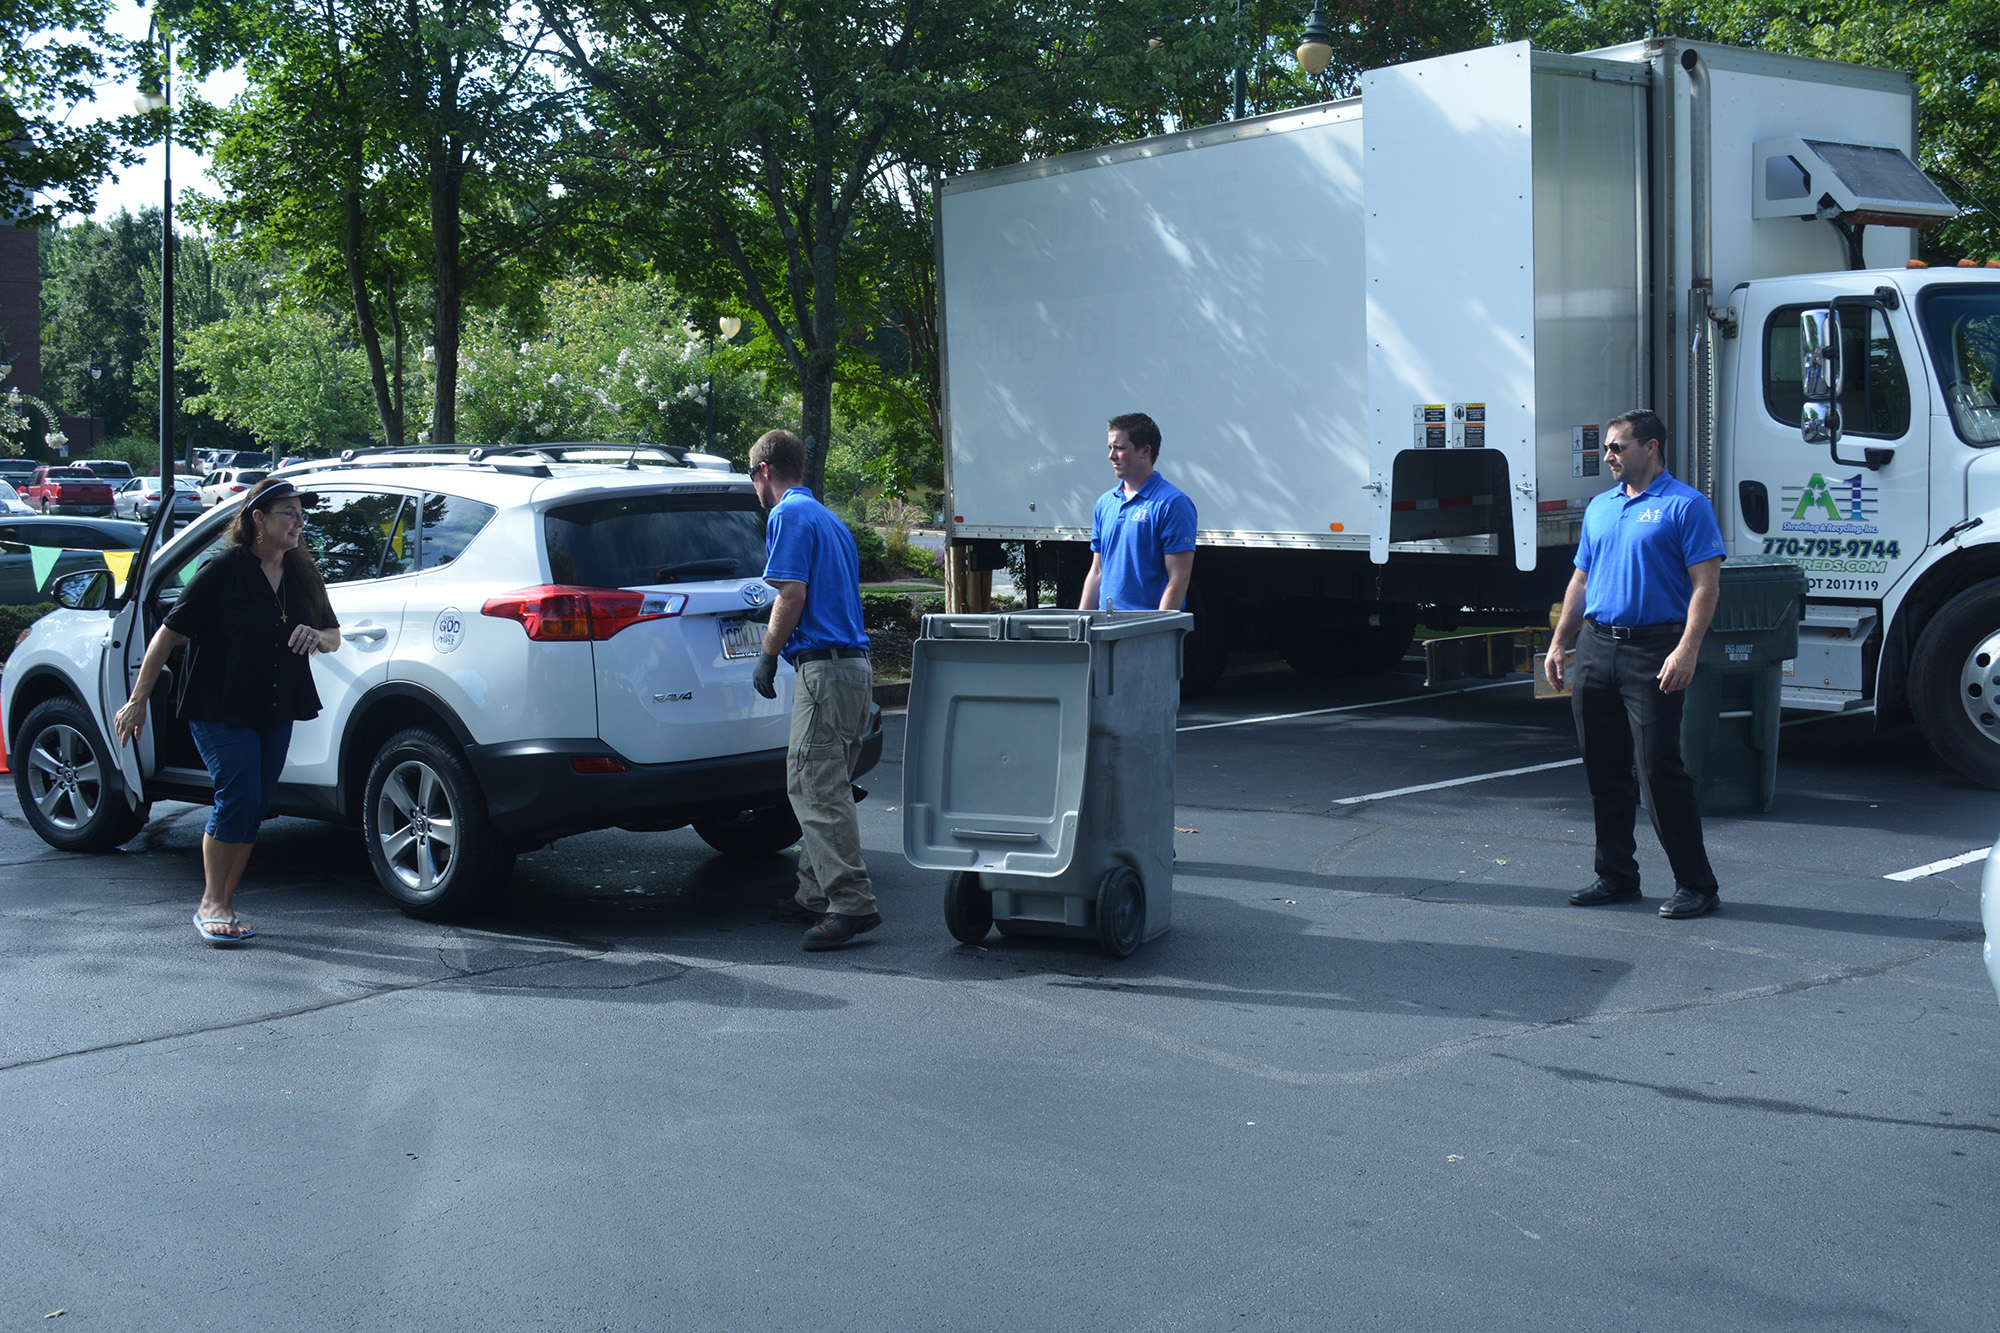 Document shredding event set for June 16